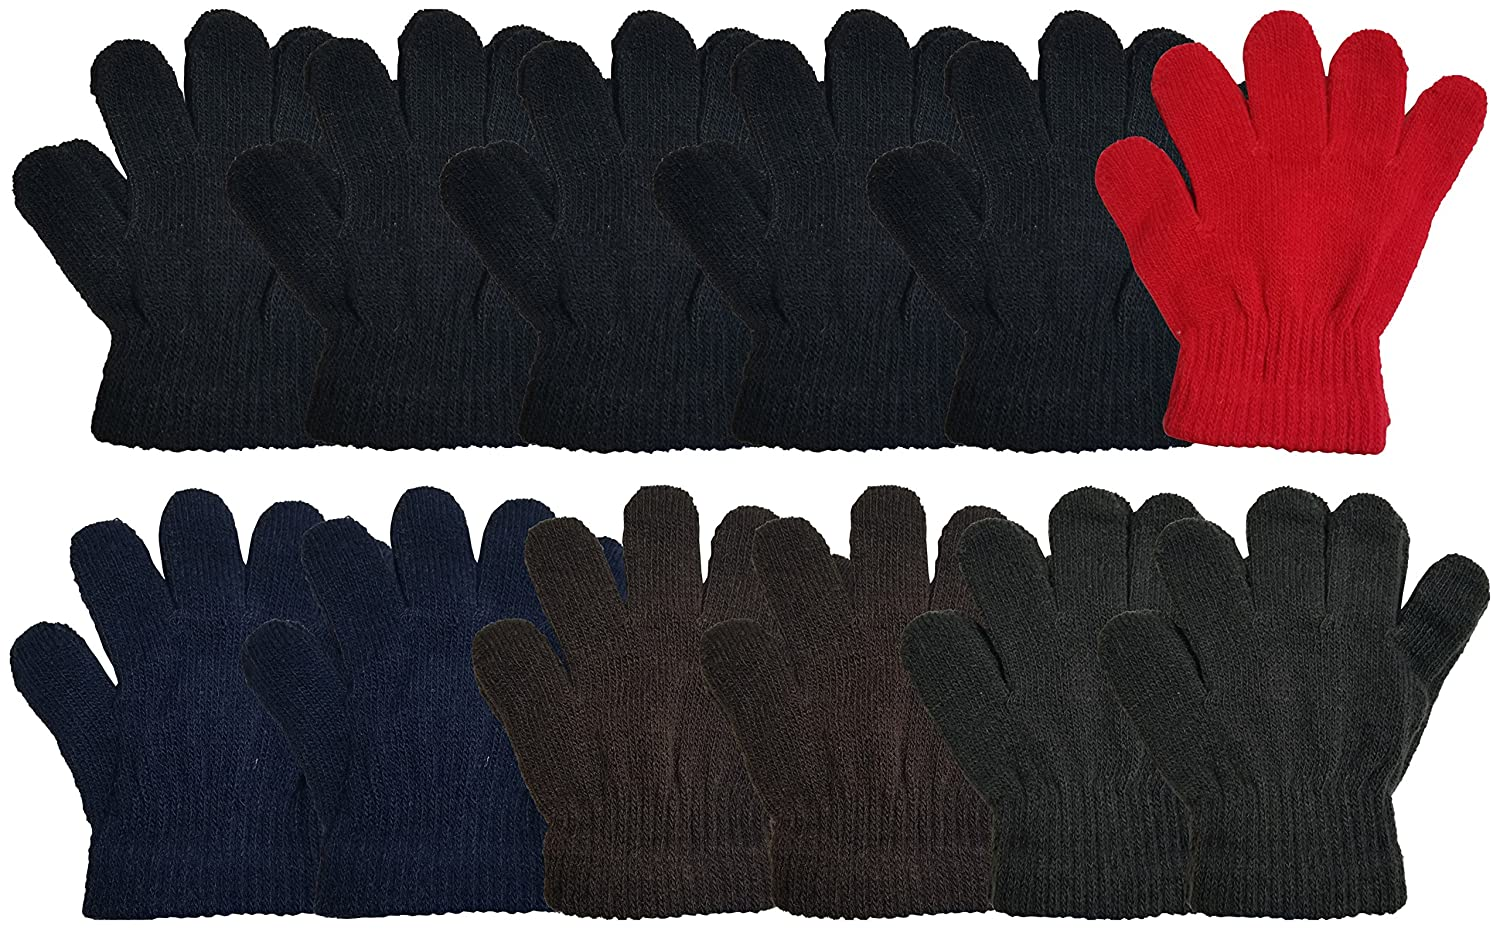 12 Pairs Winter Magic Gloves for Kids, Stretchy Warm Bulk Pack Boys Girls Children Stretchy Warm Knit Bulk Pack One Size Boys Girls Children (12 Pairs Assorted Solids)